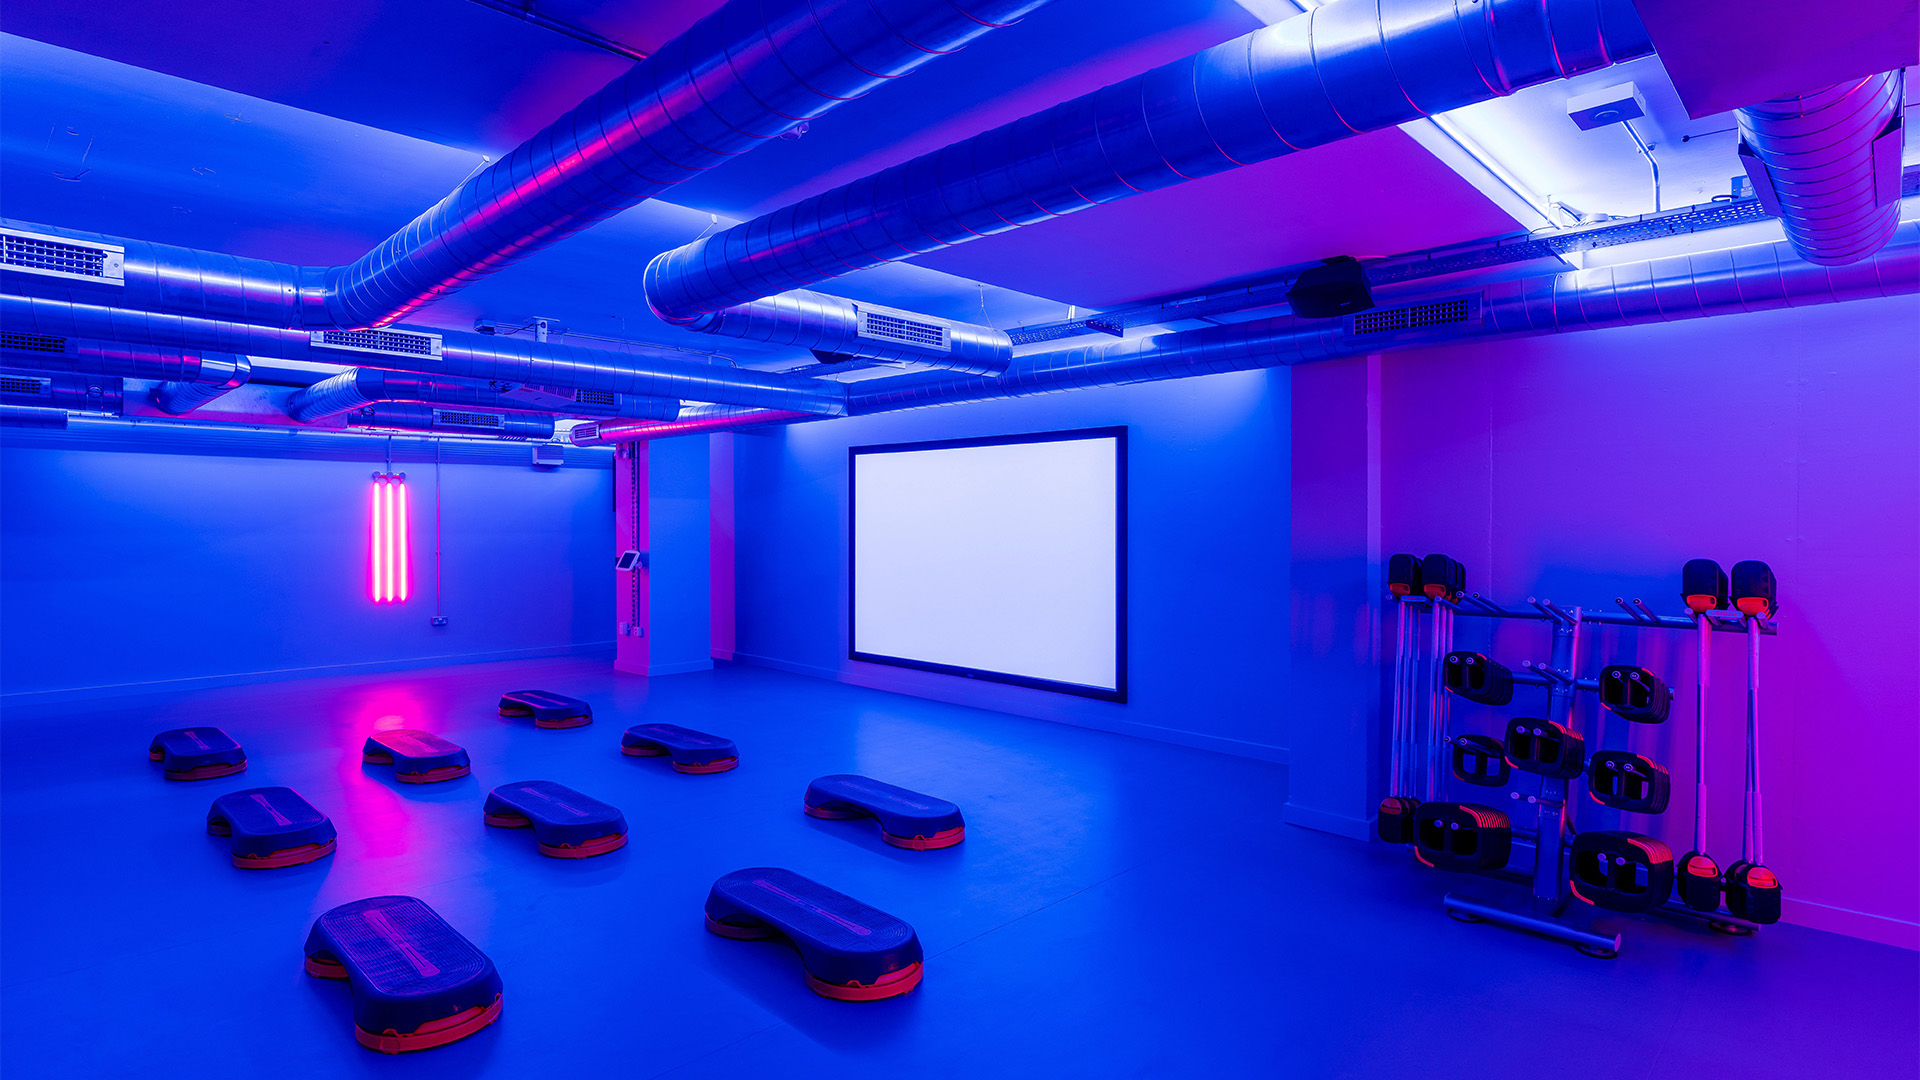 Bruntwood Works invests in wellbeing with global fitness brand